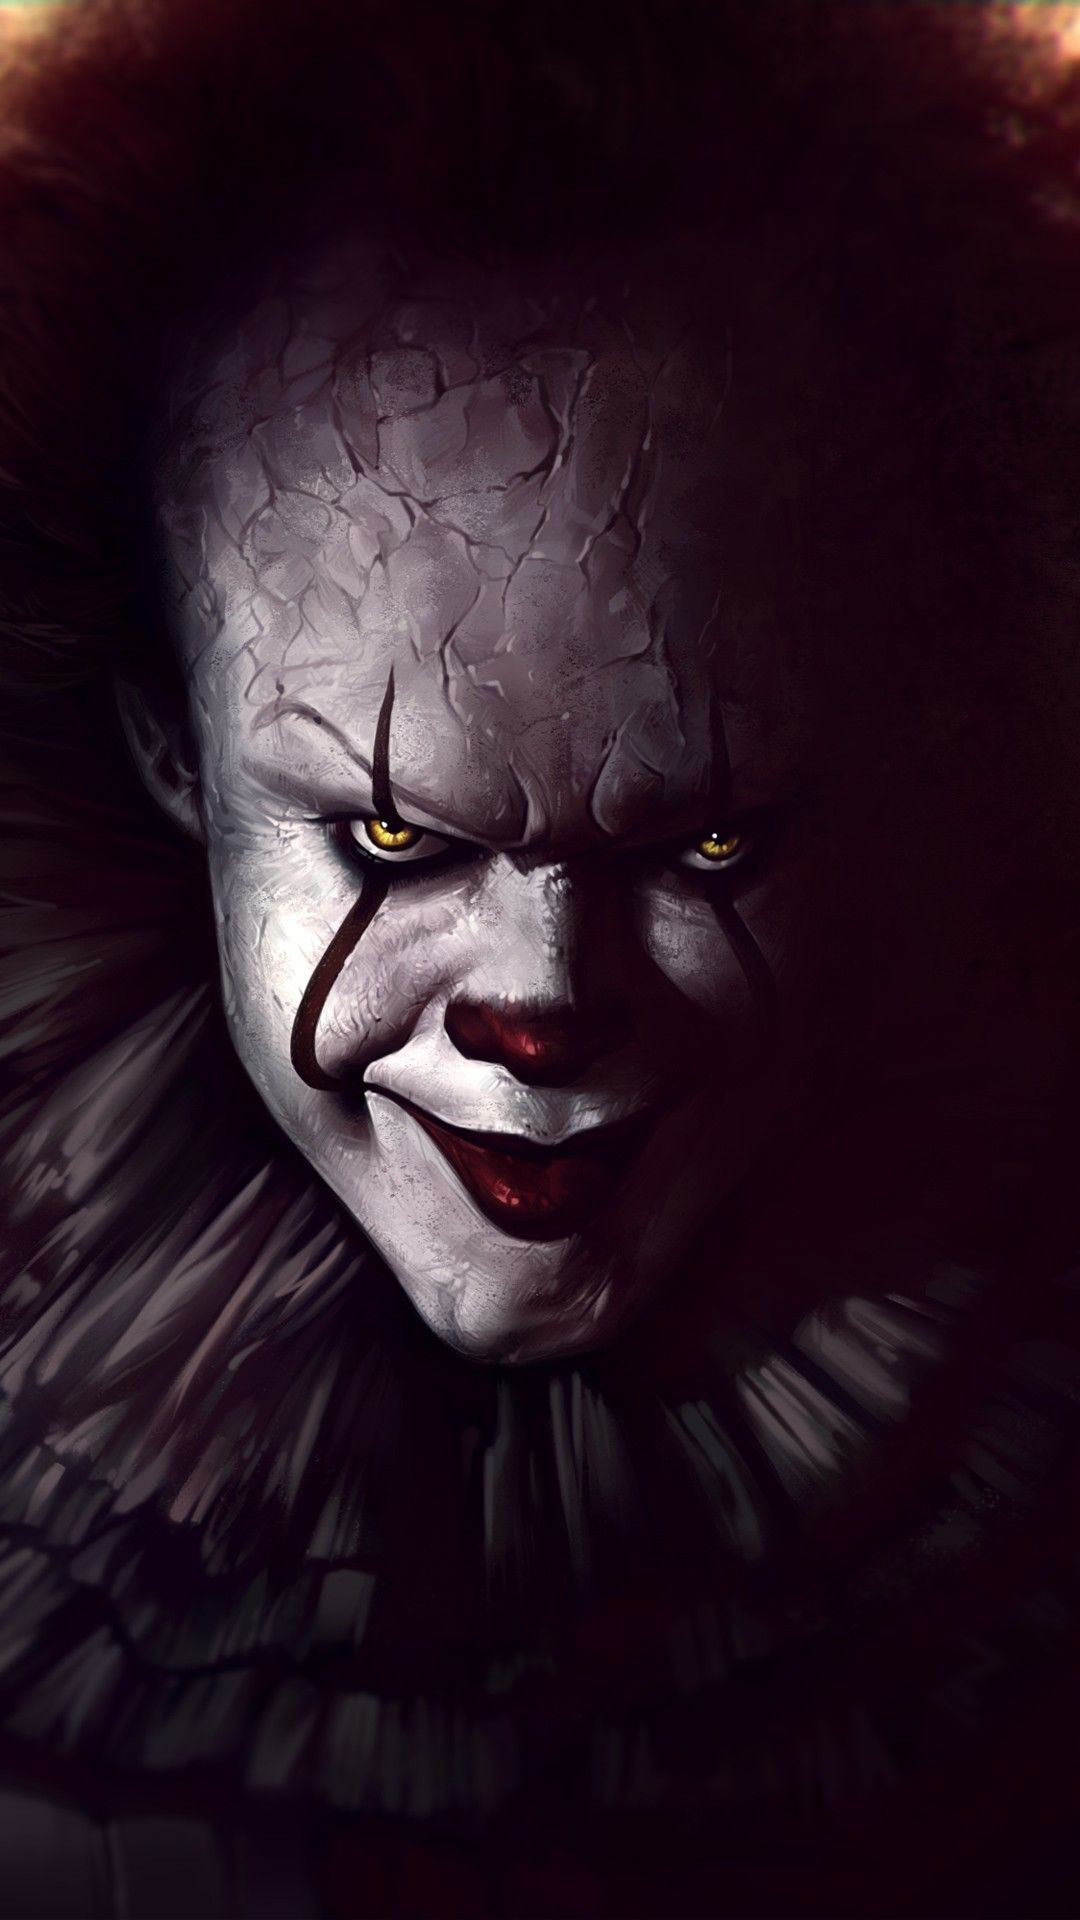 Best Pennywise Live Wallpapers Mobile pennywise live